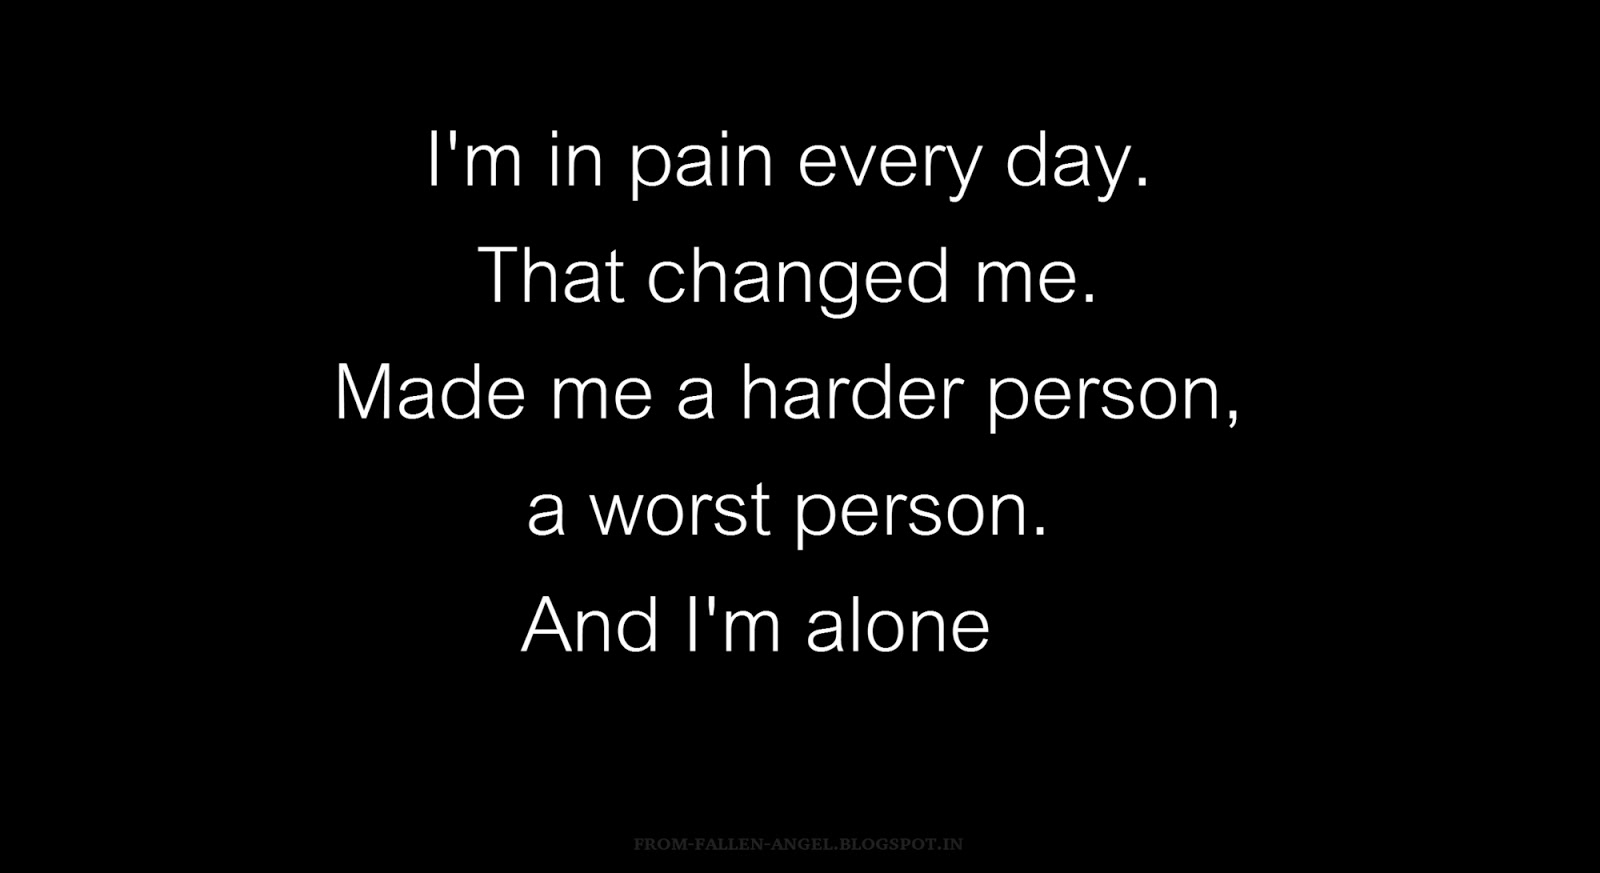 I'm in pain every day. That changed me. Made me a harder person, a worst person. And I'm alone